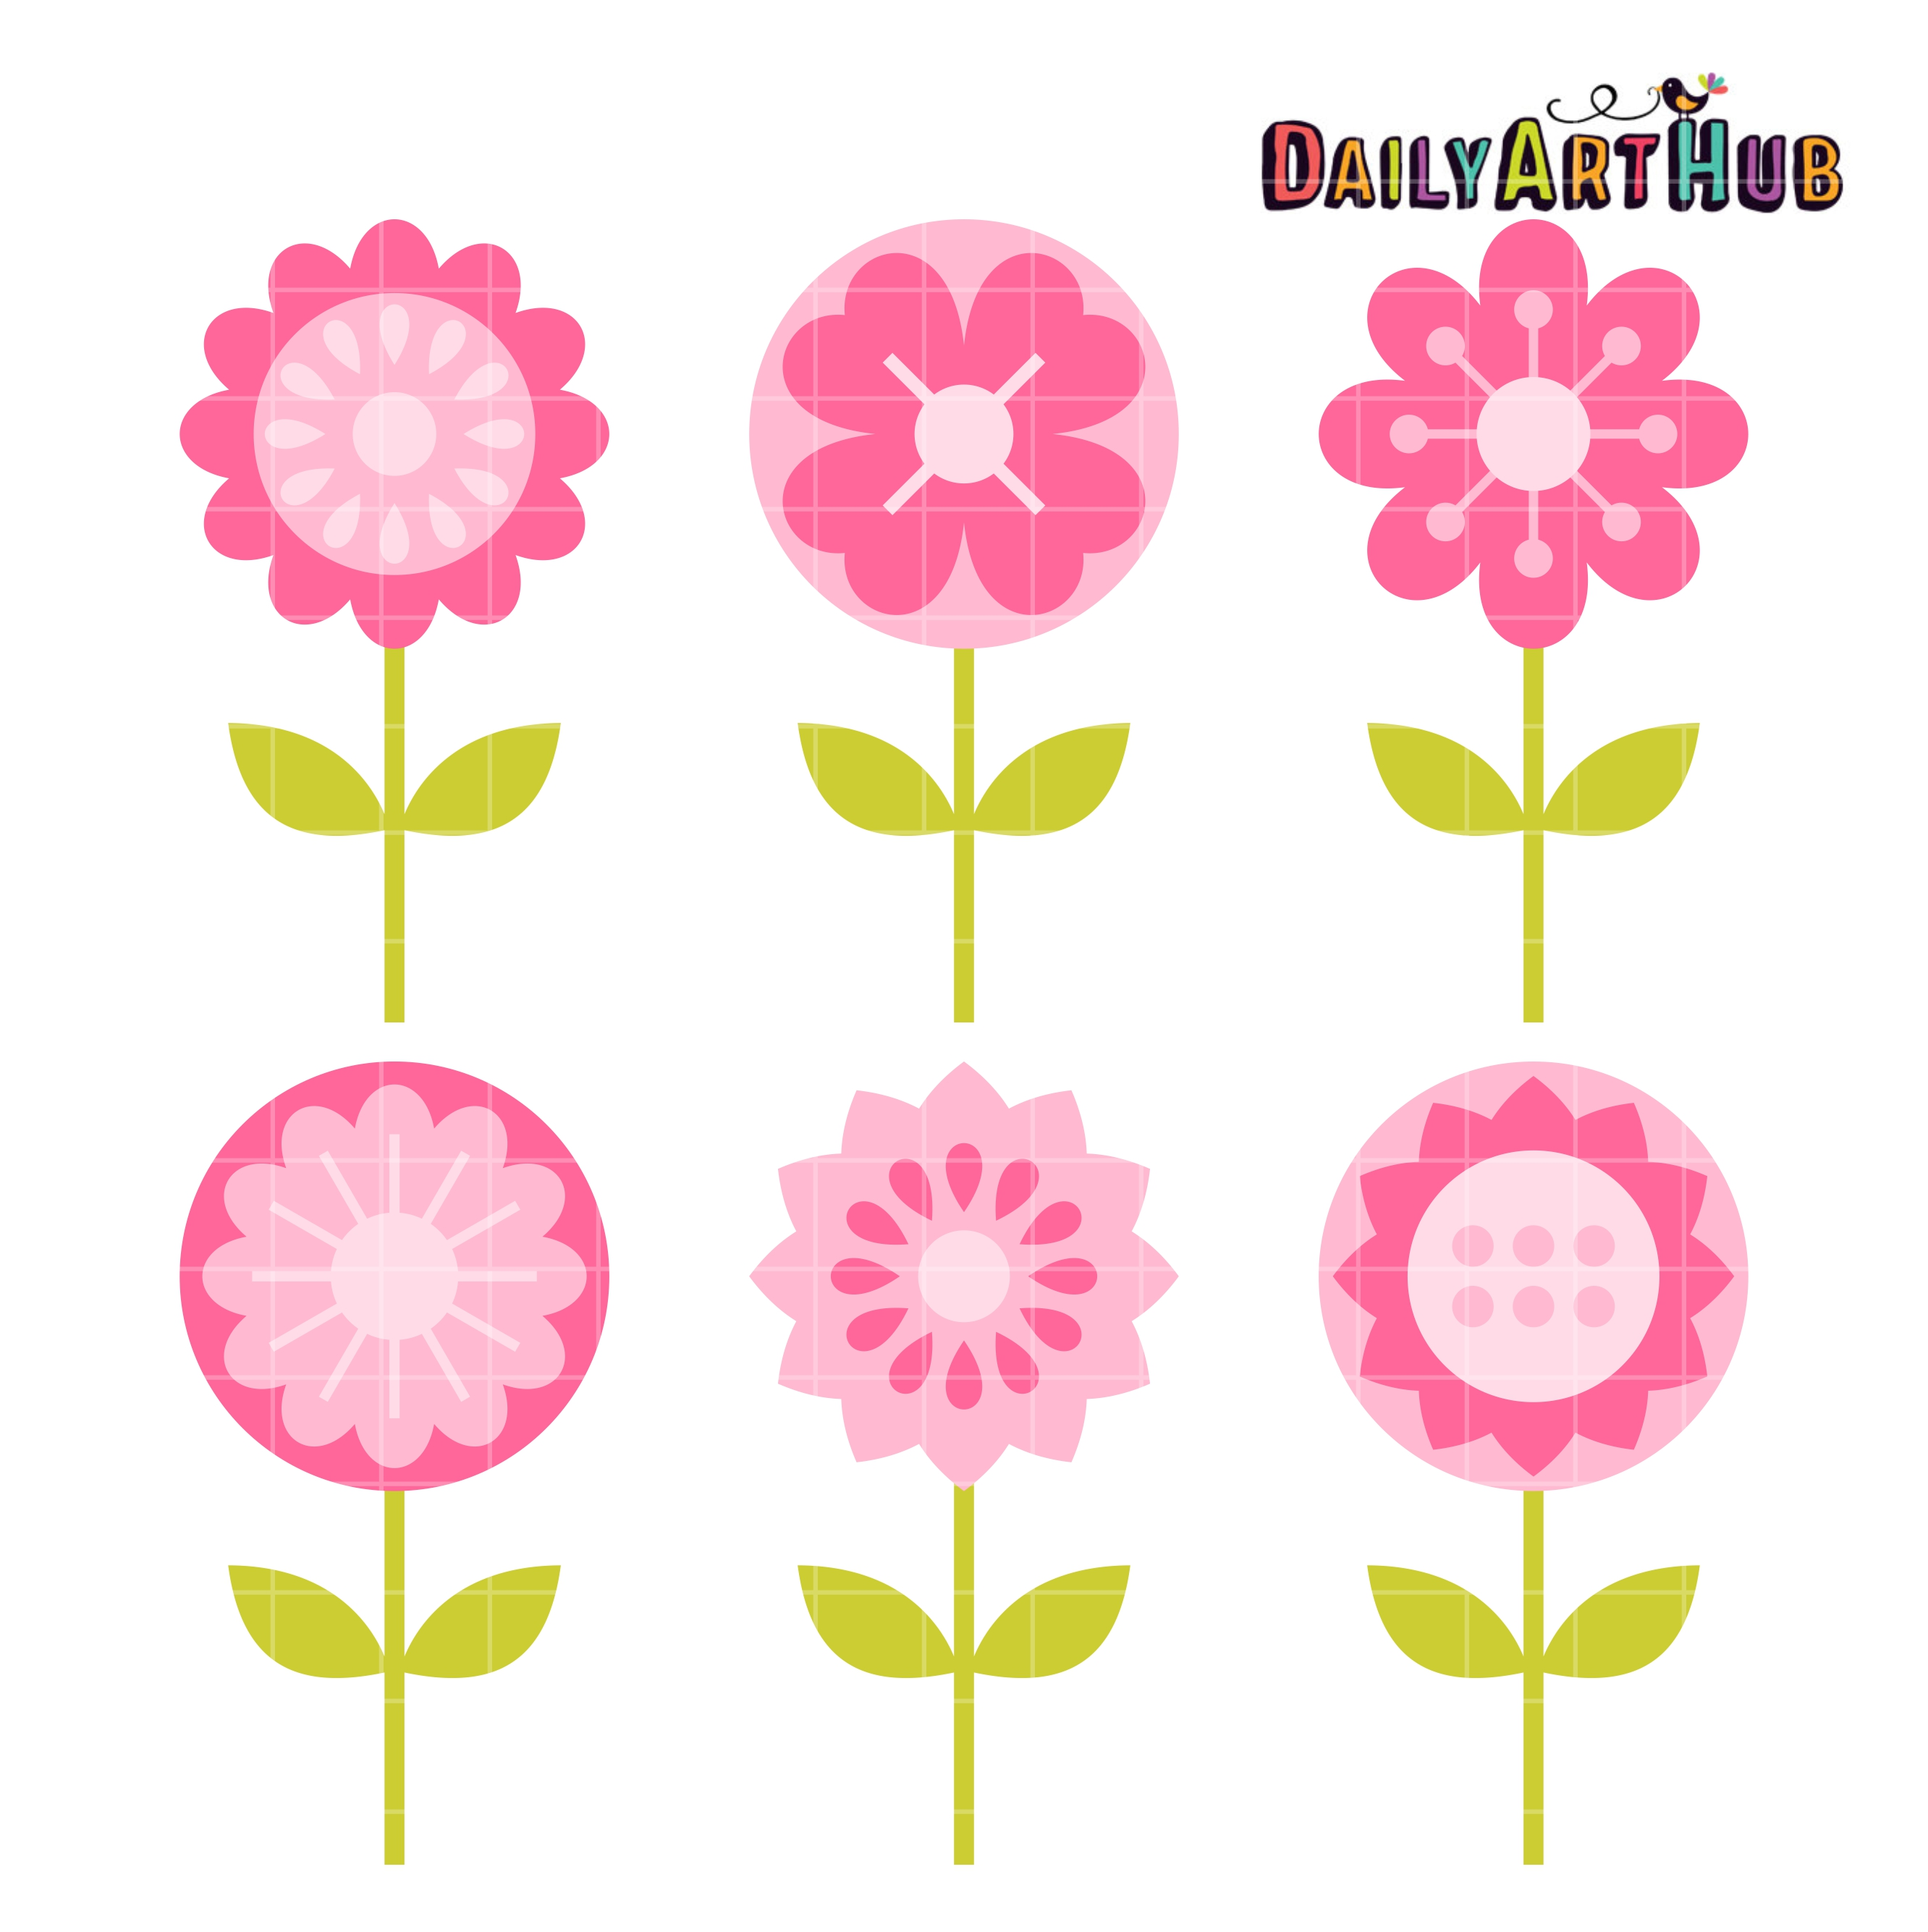 Pink flowers clip art set daily art hub free clip art everyday pink flowers clip art set mightylinksfo Choice Image